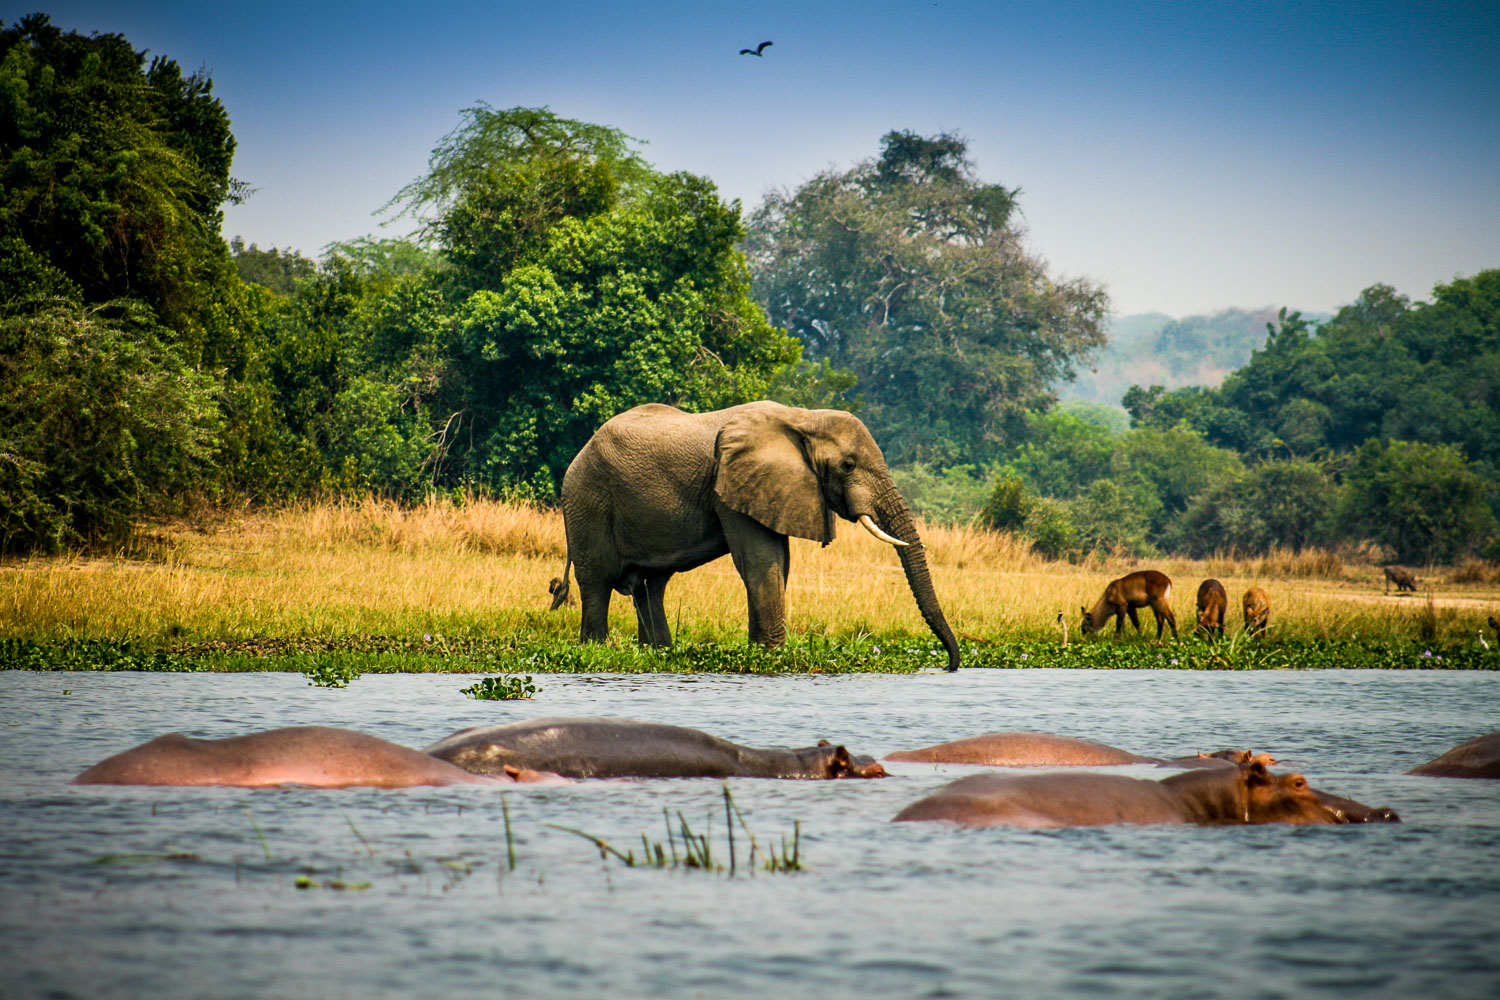 A Photograph Showing A Safari Scene With An Elephant And Hippopotamus In Murchison Falls National Park, Uganda.